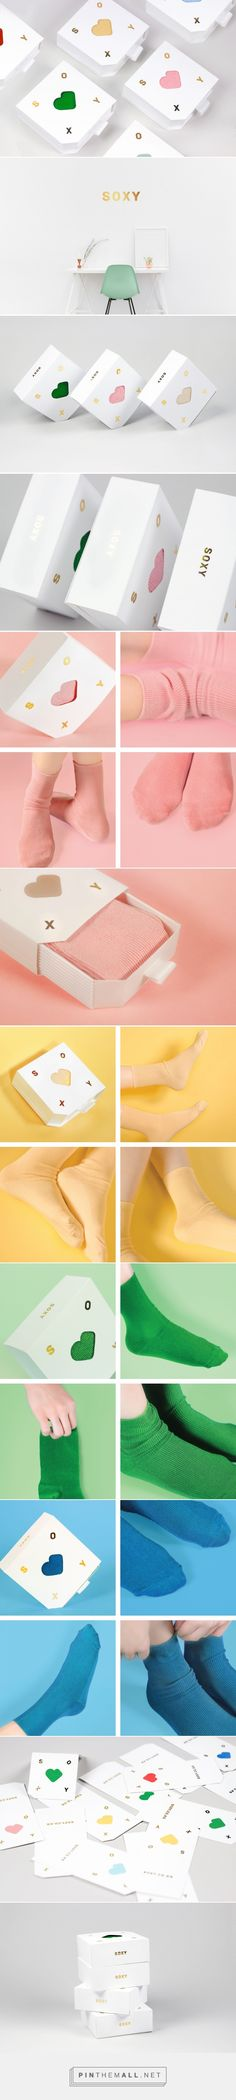 SOXY Socks Packaging by Juliette Kim | Fivestar Branding Agency – Design and Branding Agency & Curated Inspiration Gallery